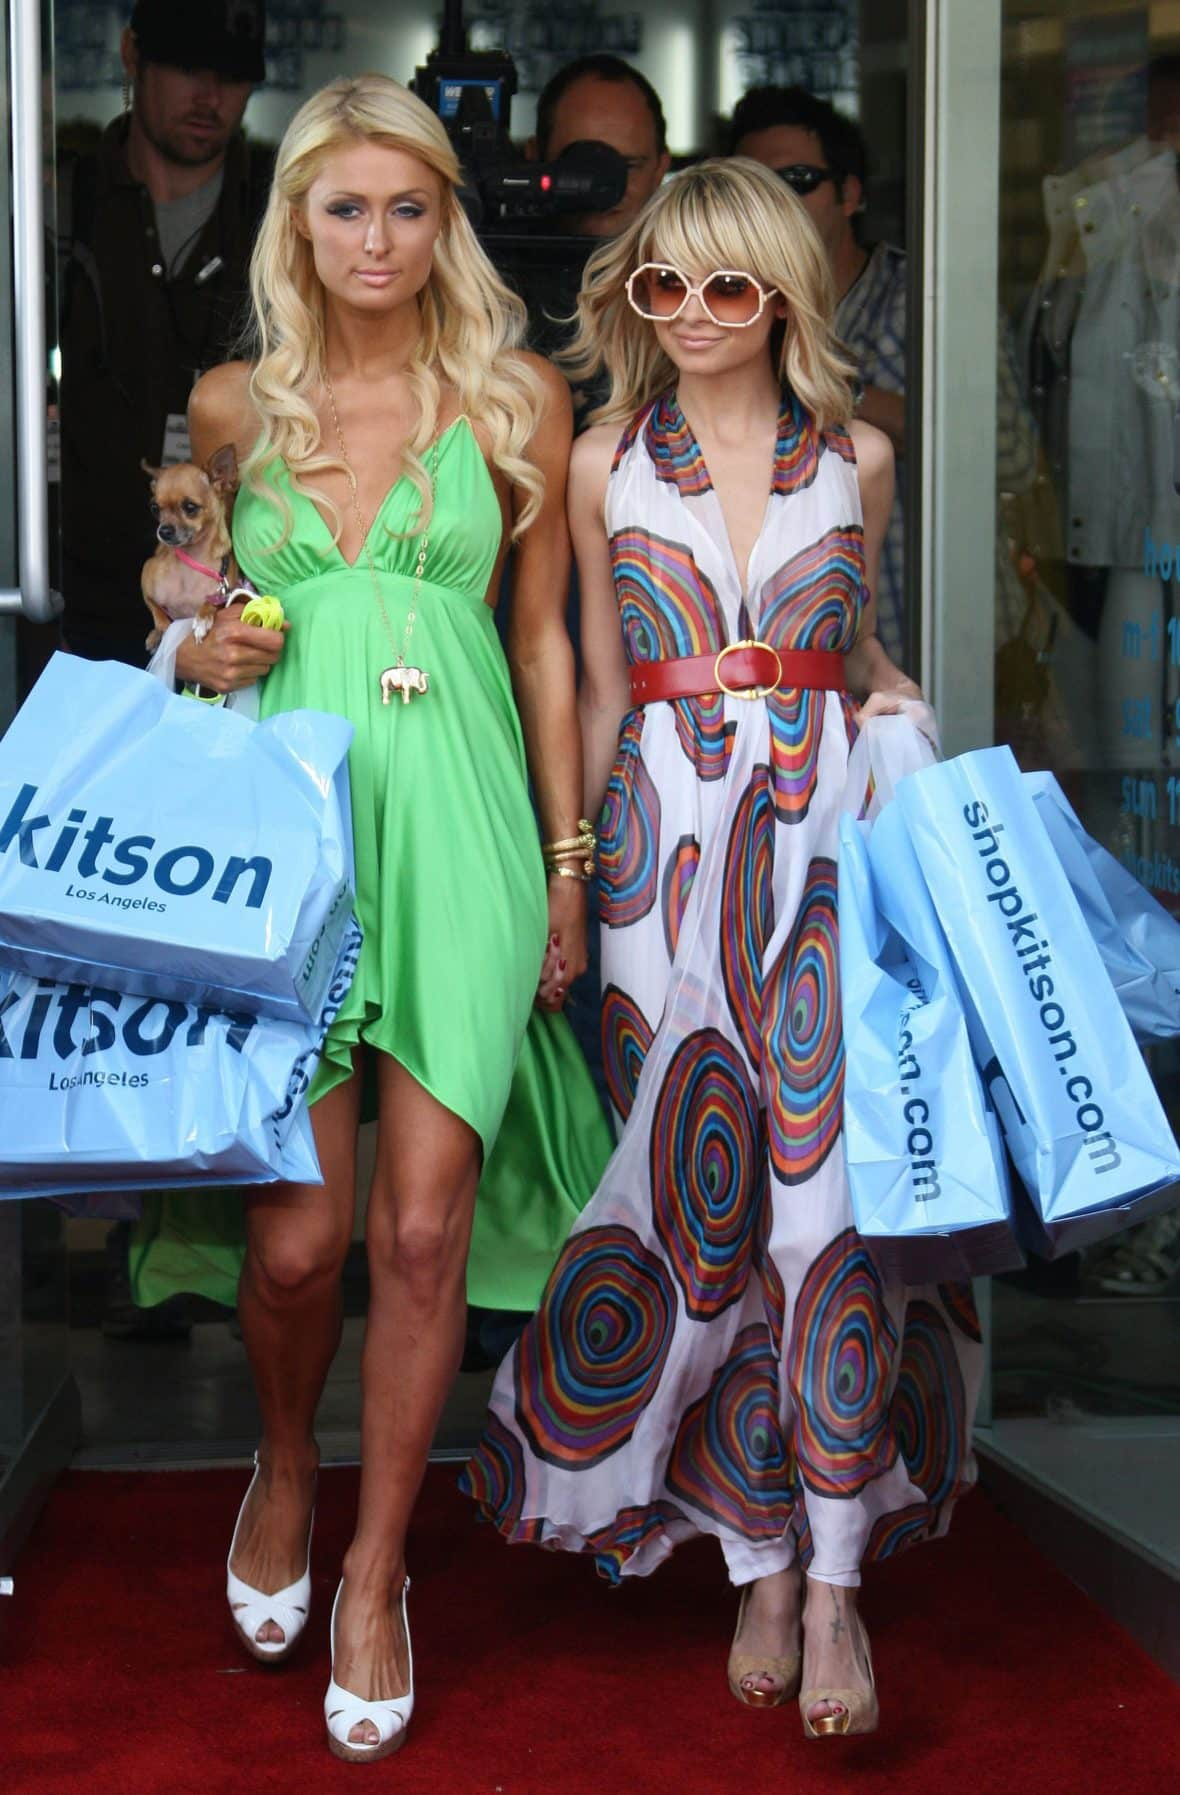 Nicole Richie and Paris Hilton holding hands and shopping bags.